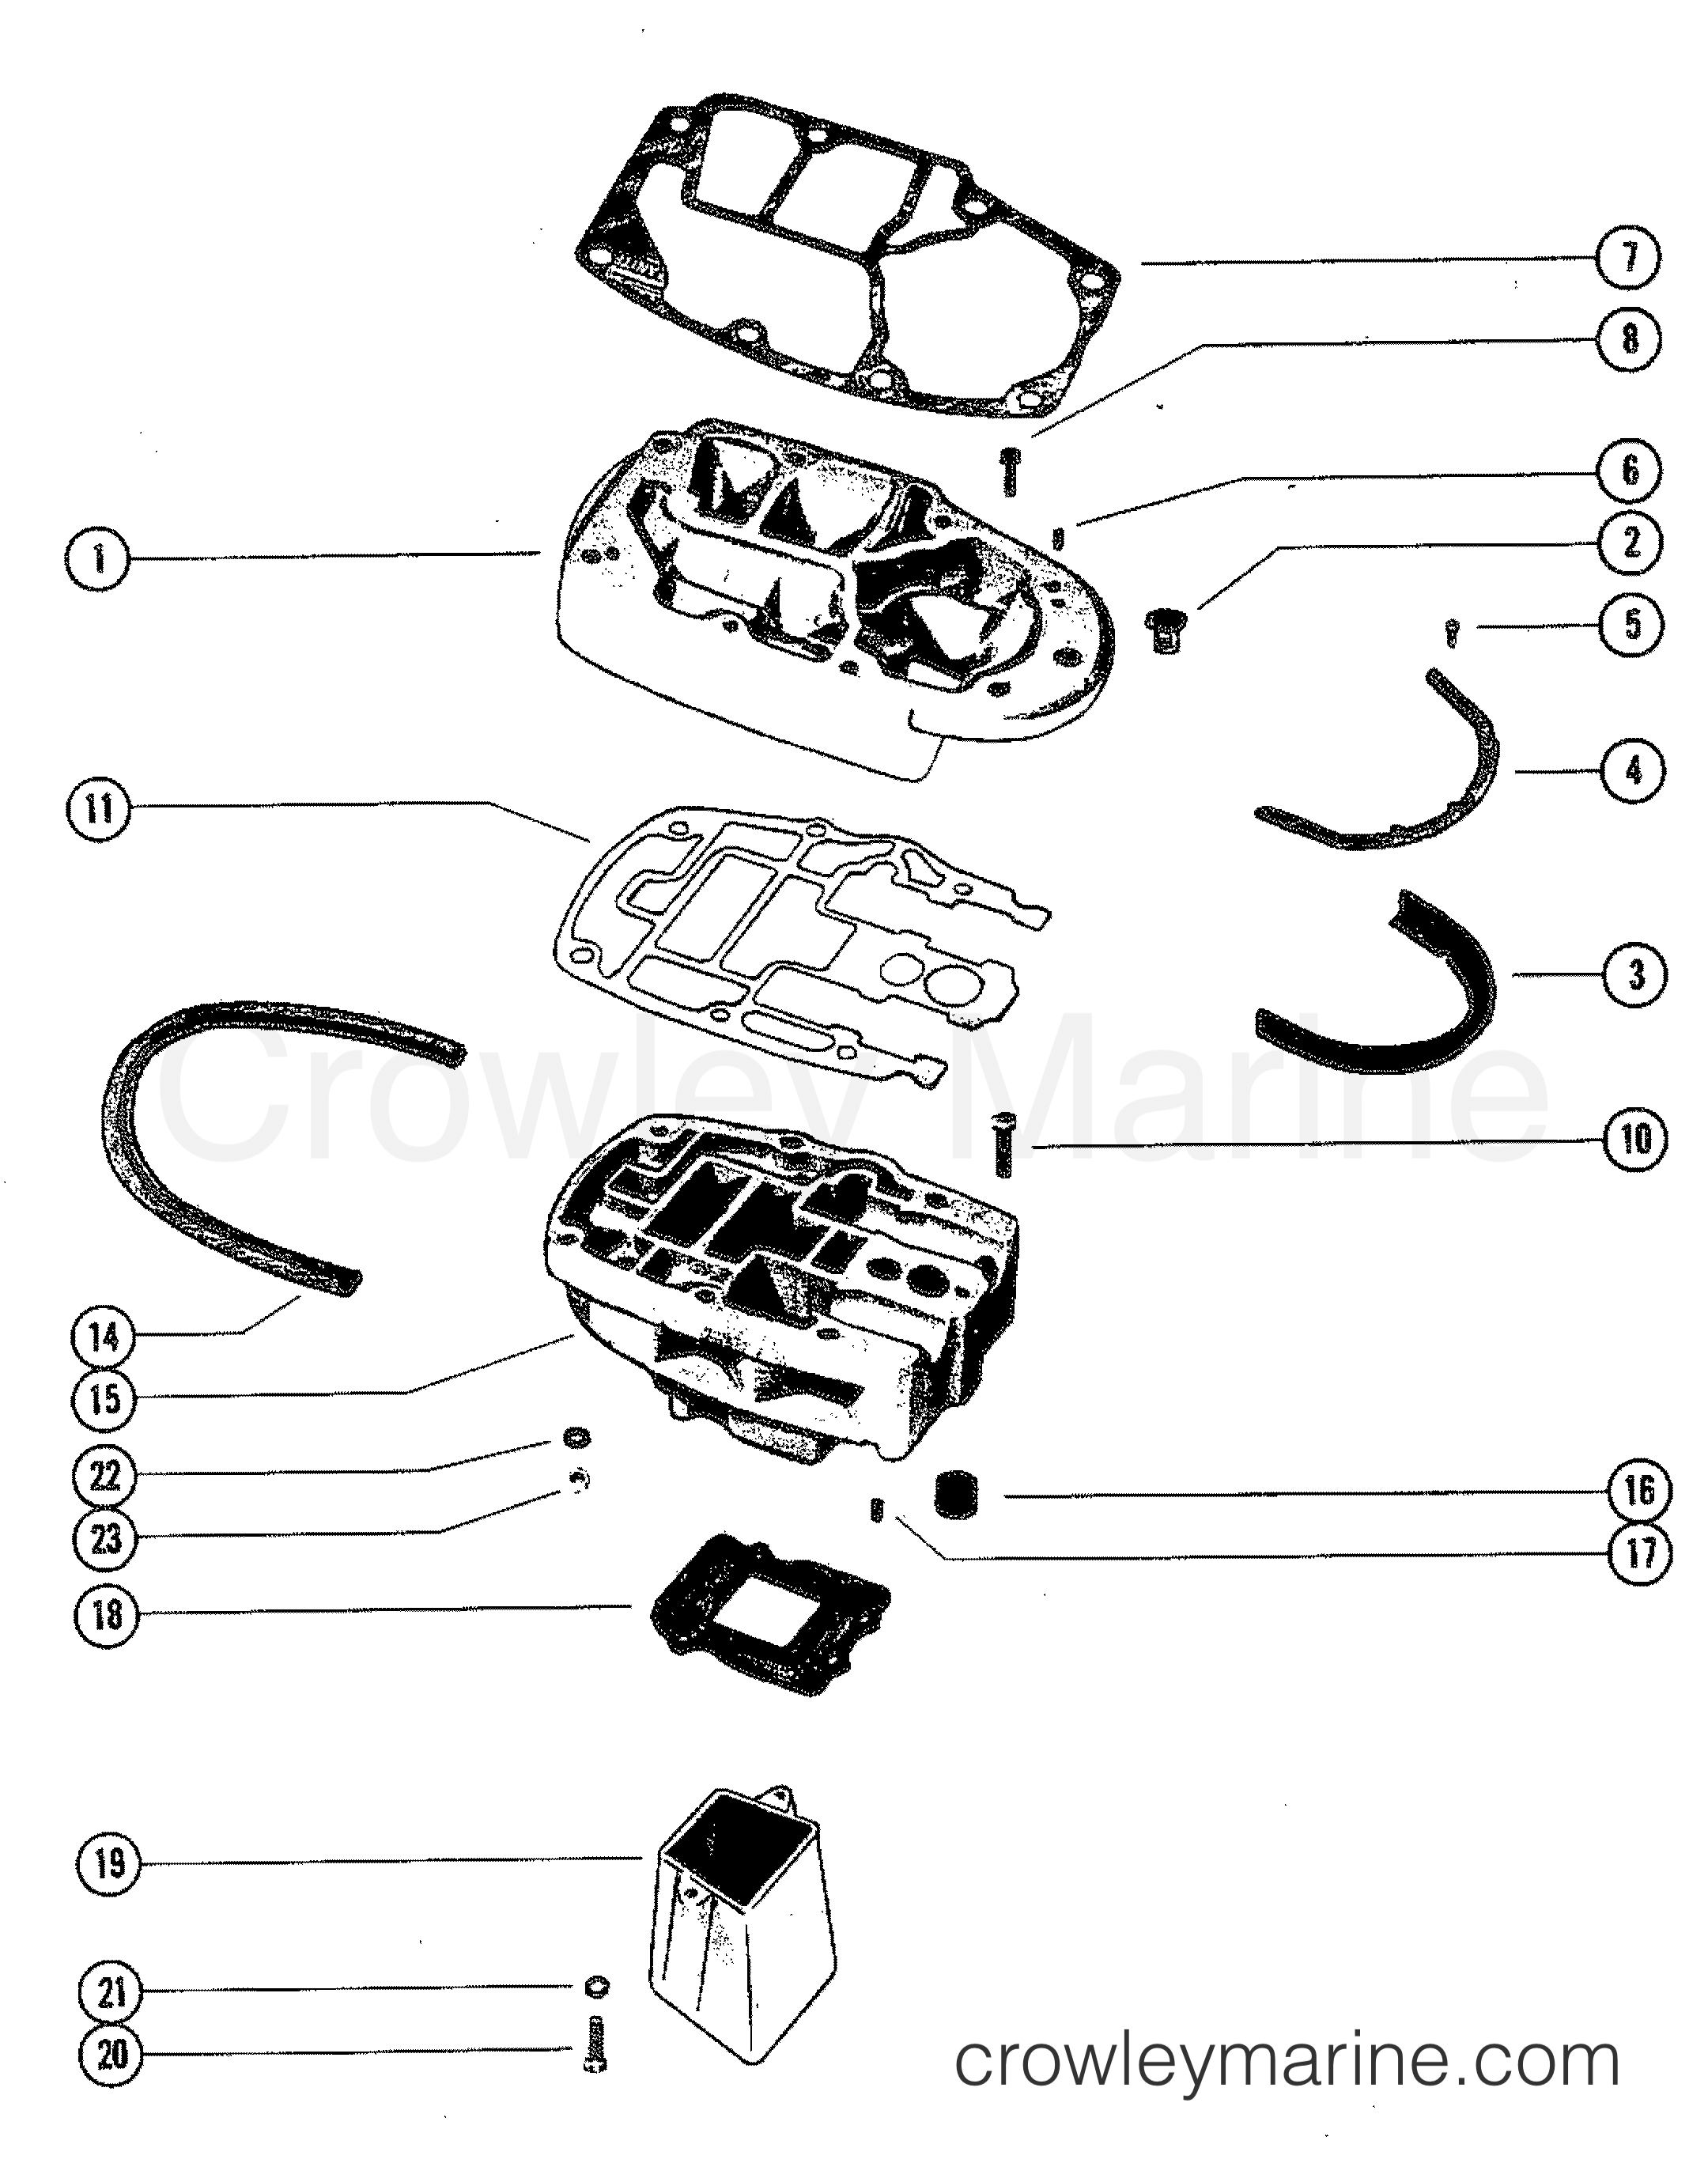 Exhaust Extension Plate